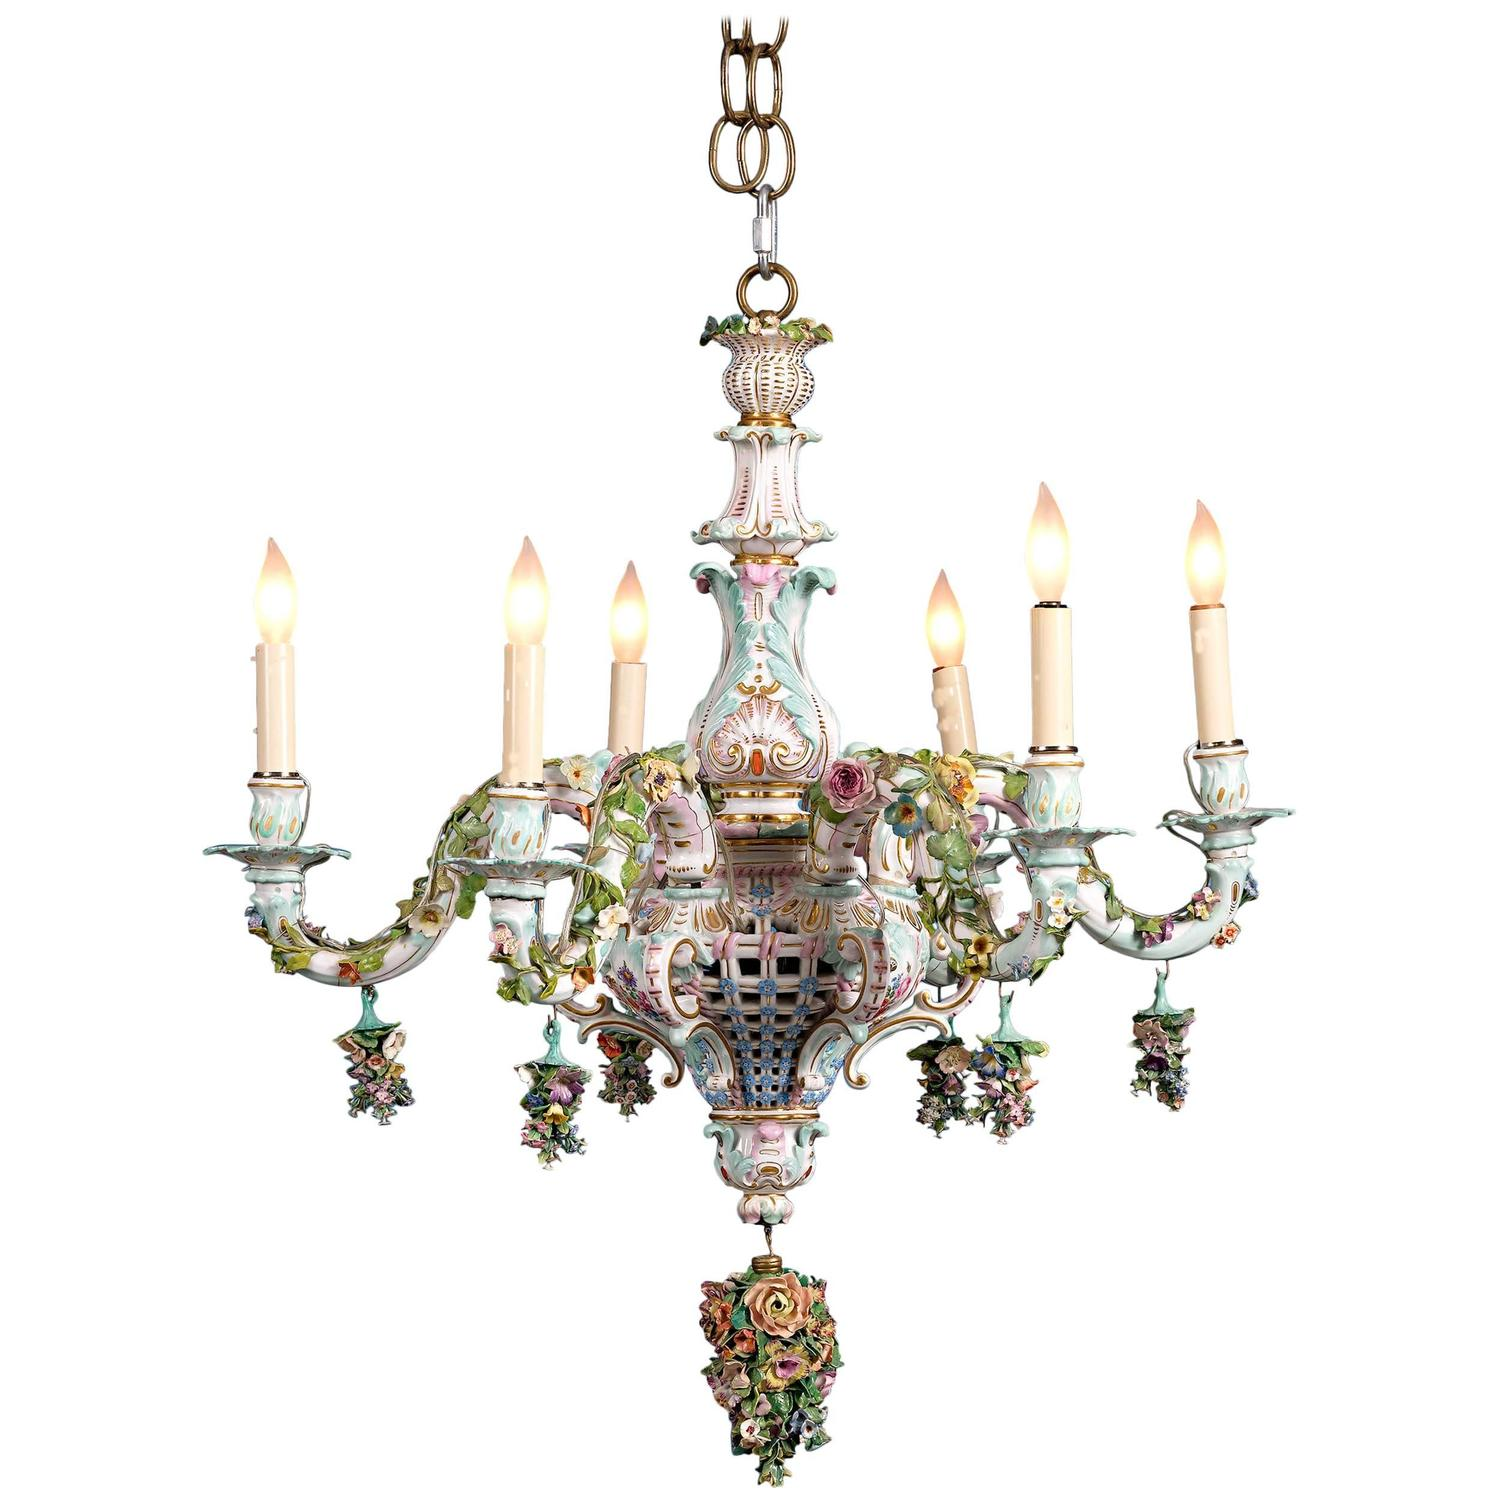 Meissen Porcelain Six Light Rococo Style Chandelier For Sale at